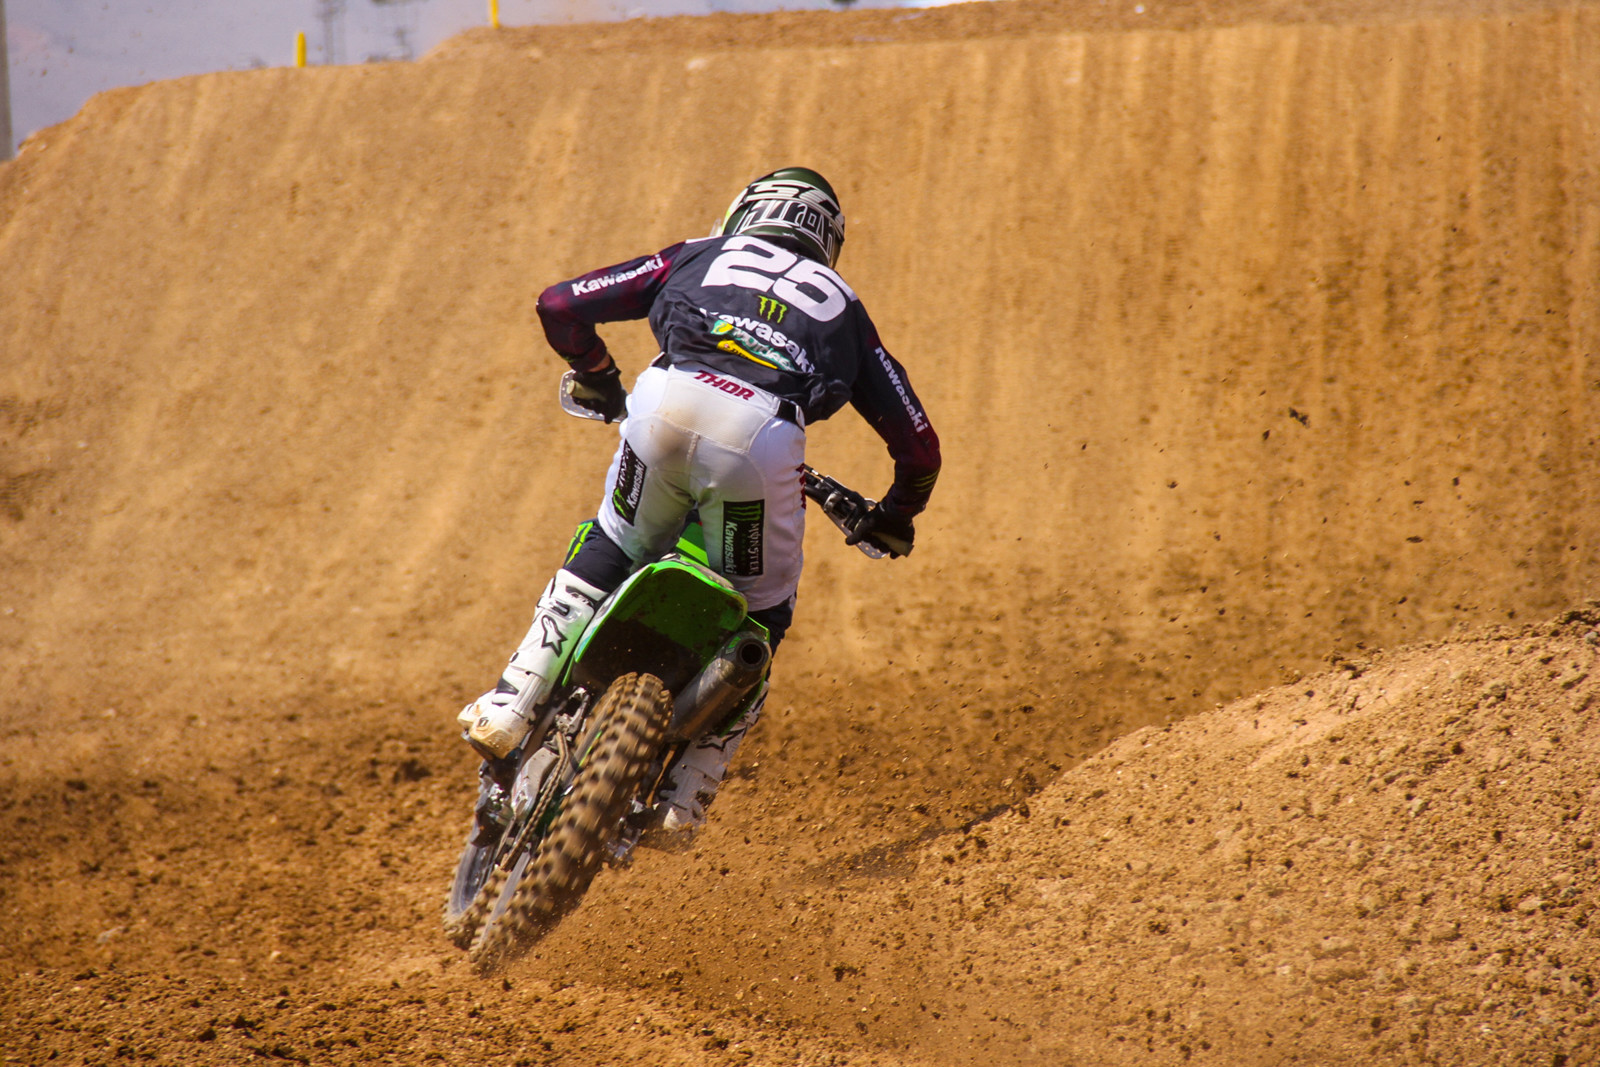 Another podium on lock, as Clemente Desalle heads towards a third overall on the season.